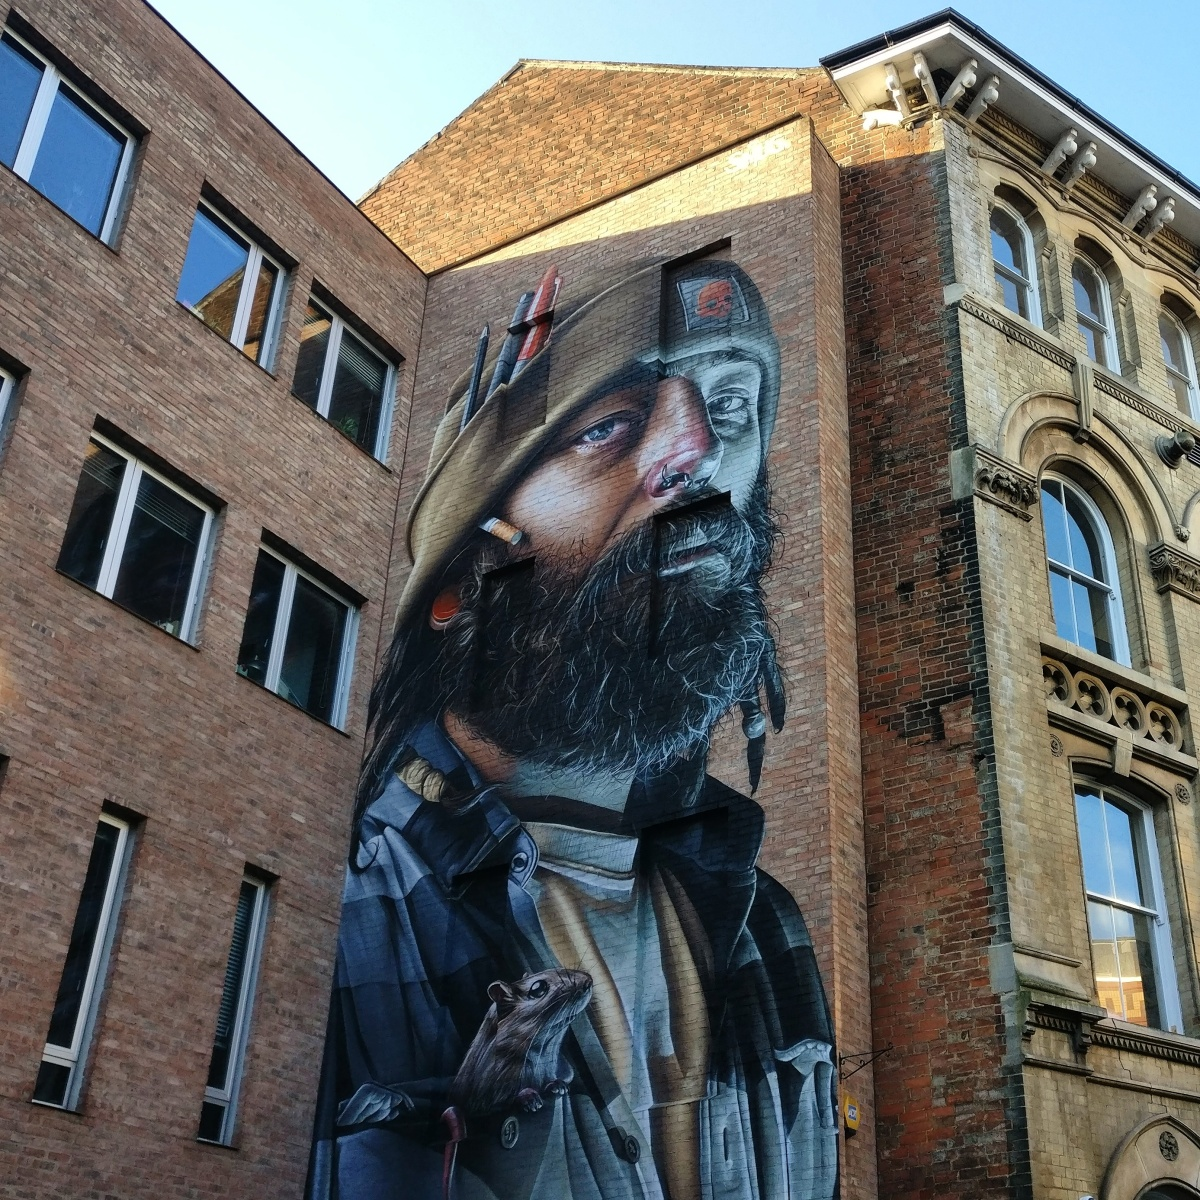 Where to find street art and graffiti in Leicester